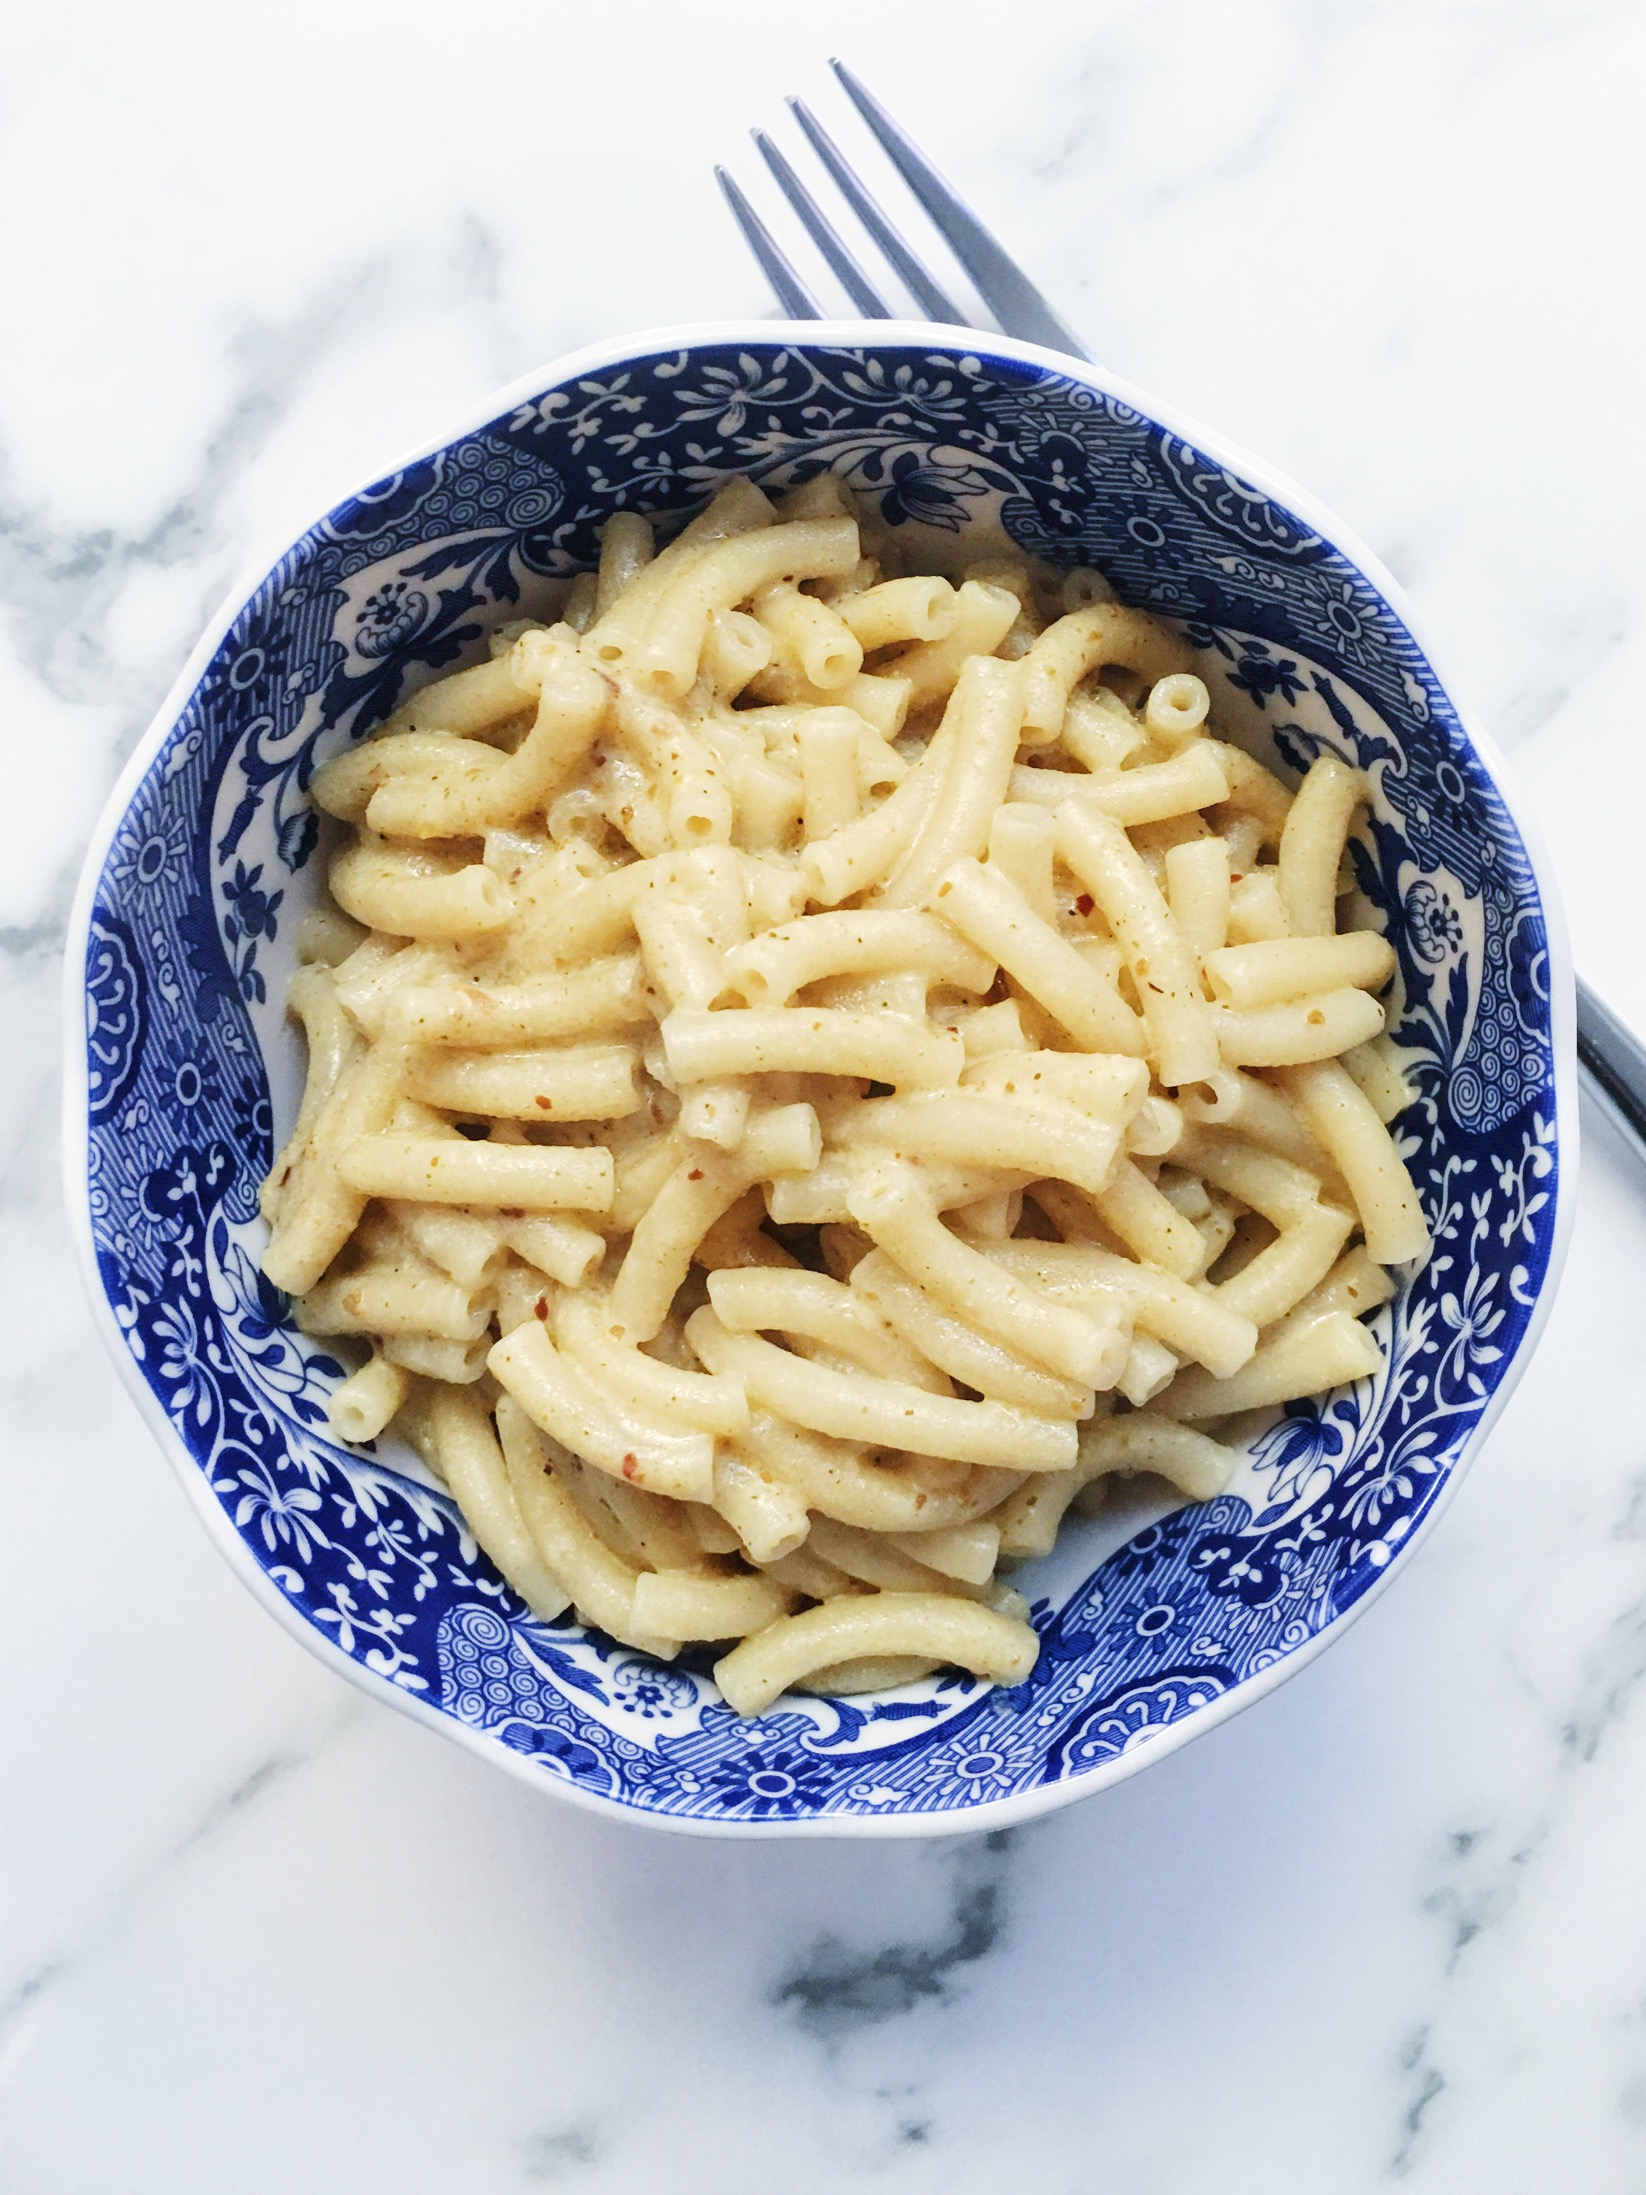 Secret Ingredients Macaroni and Cheese